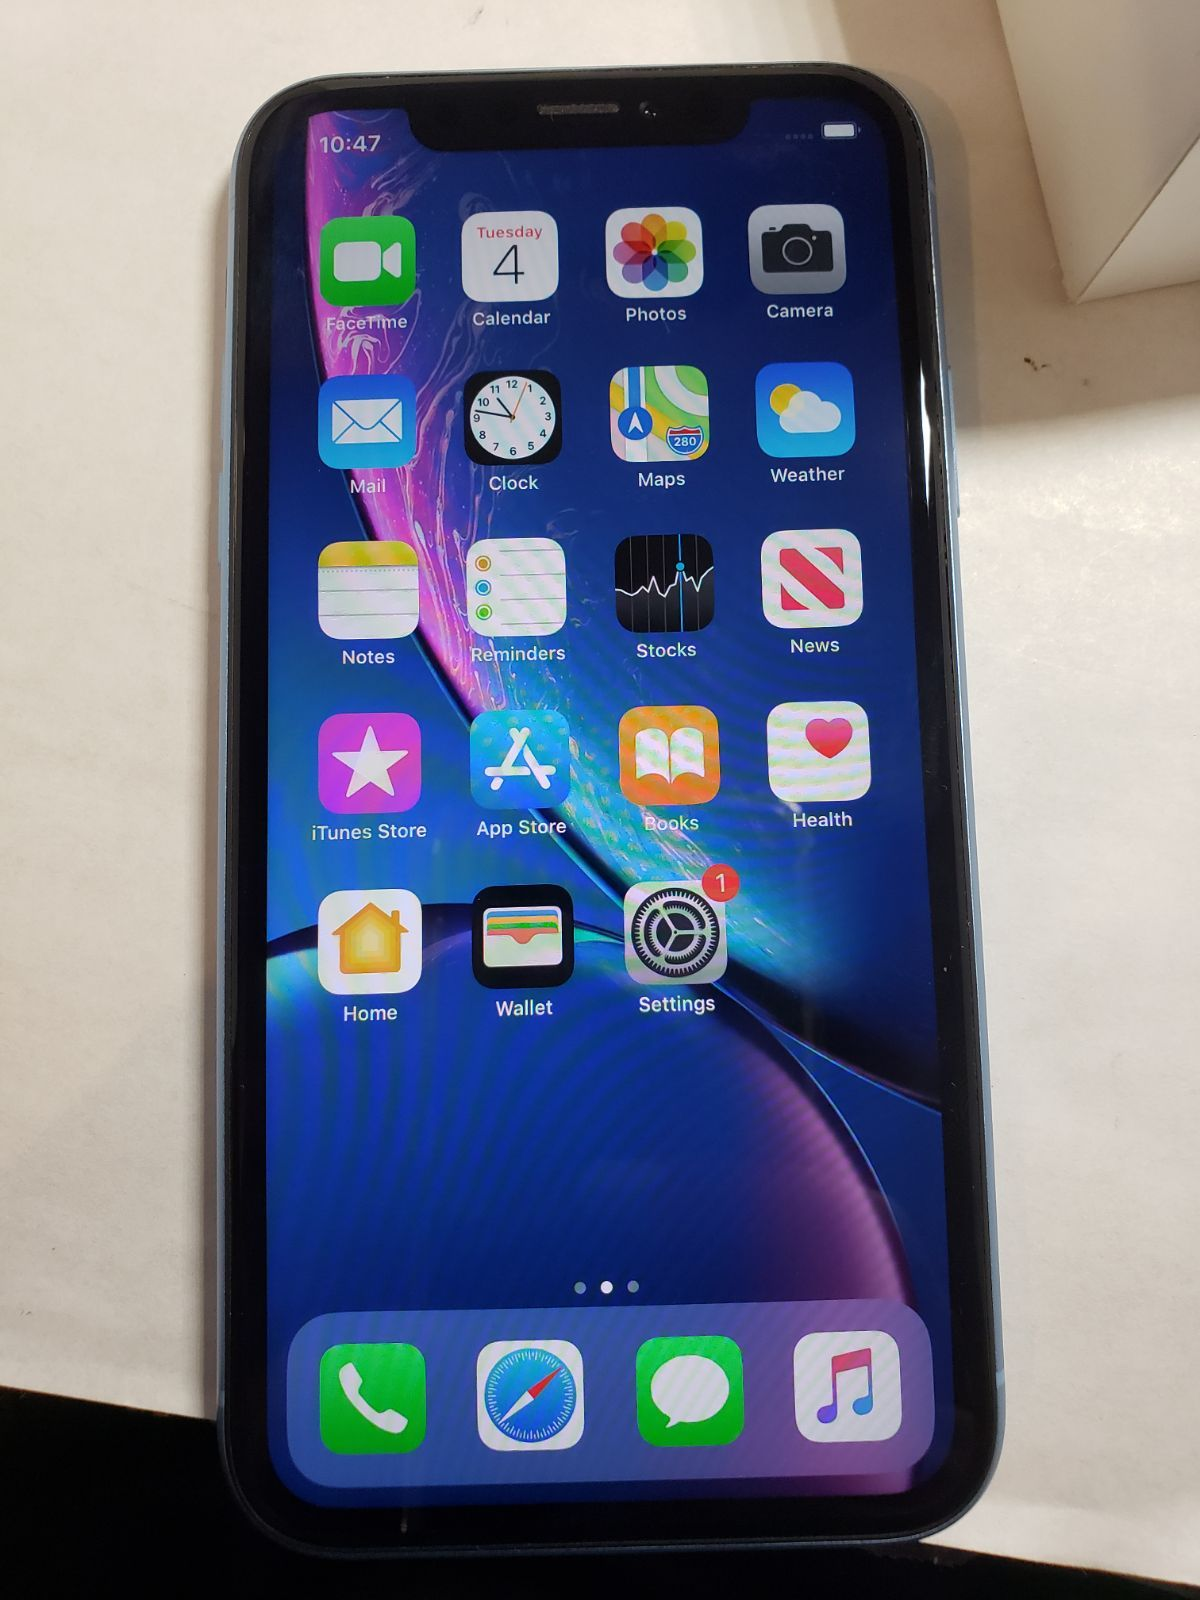 Iphone Xr 64gb At T Financed So Will Only Work For At T Or Cricket Wireless Service Has Been Tested And Guarantee Cricket Wireless Iphone Wireless Service